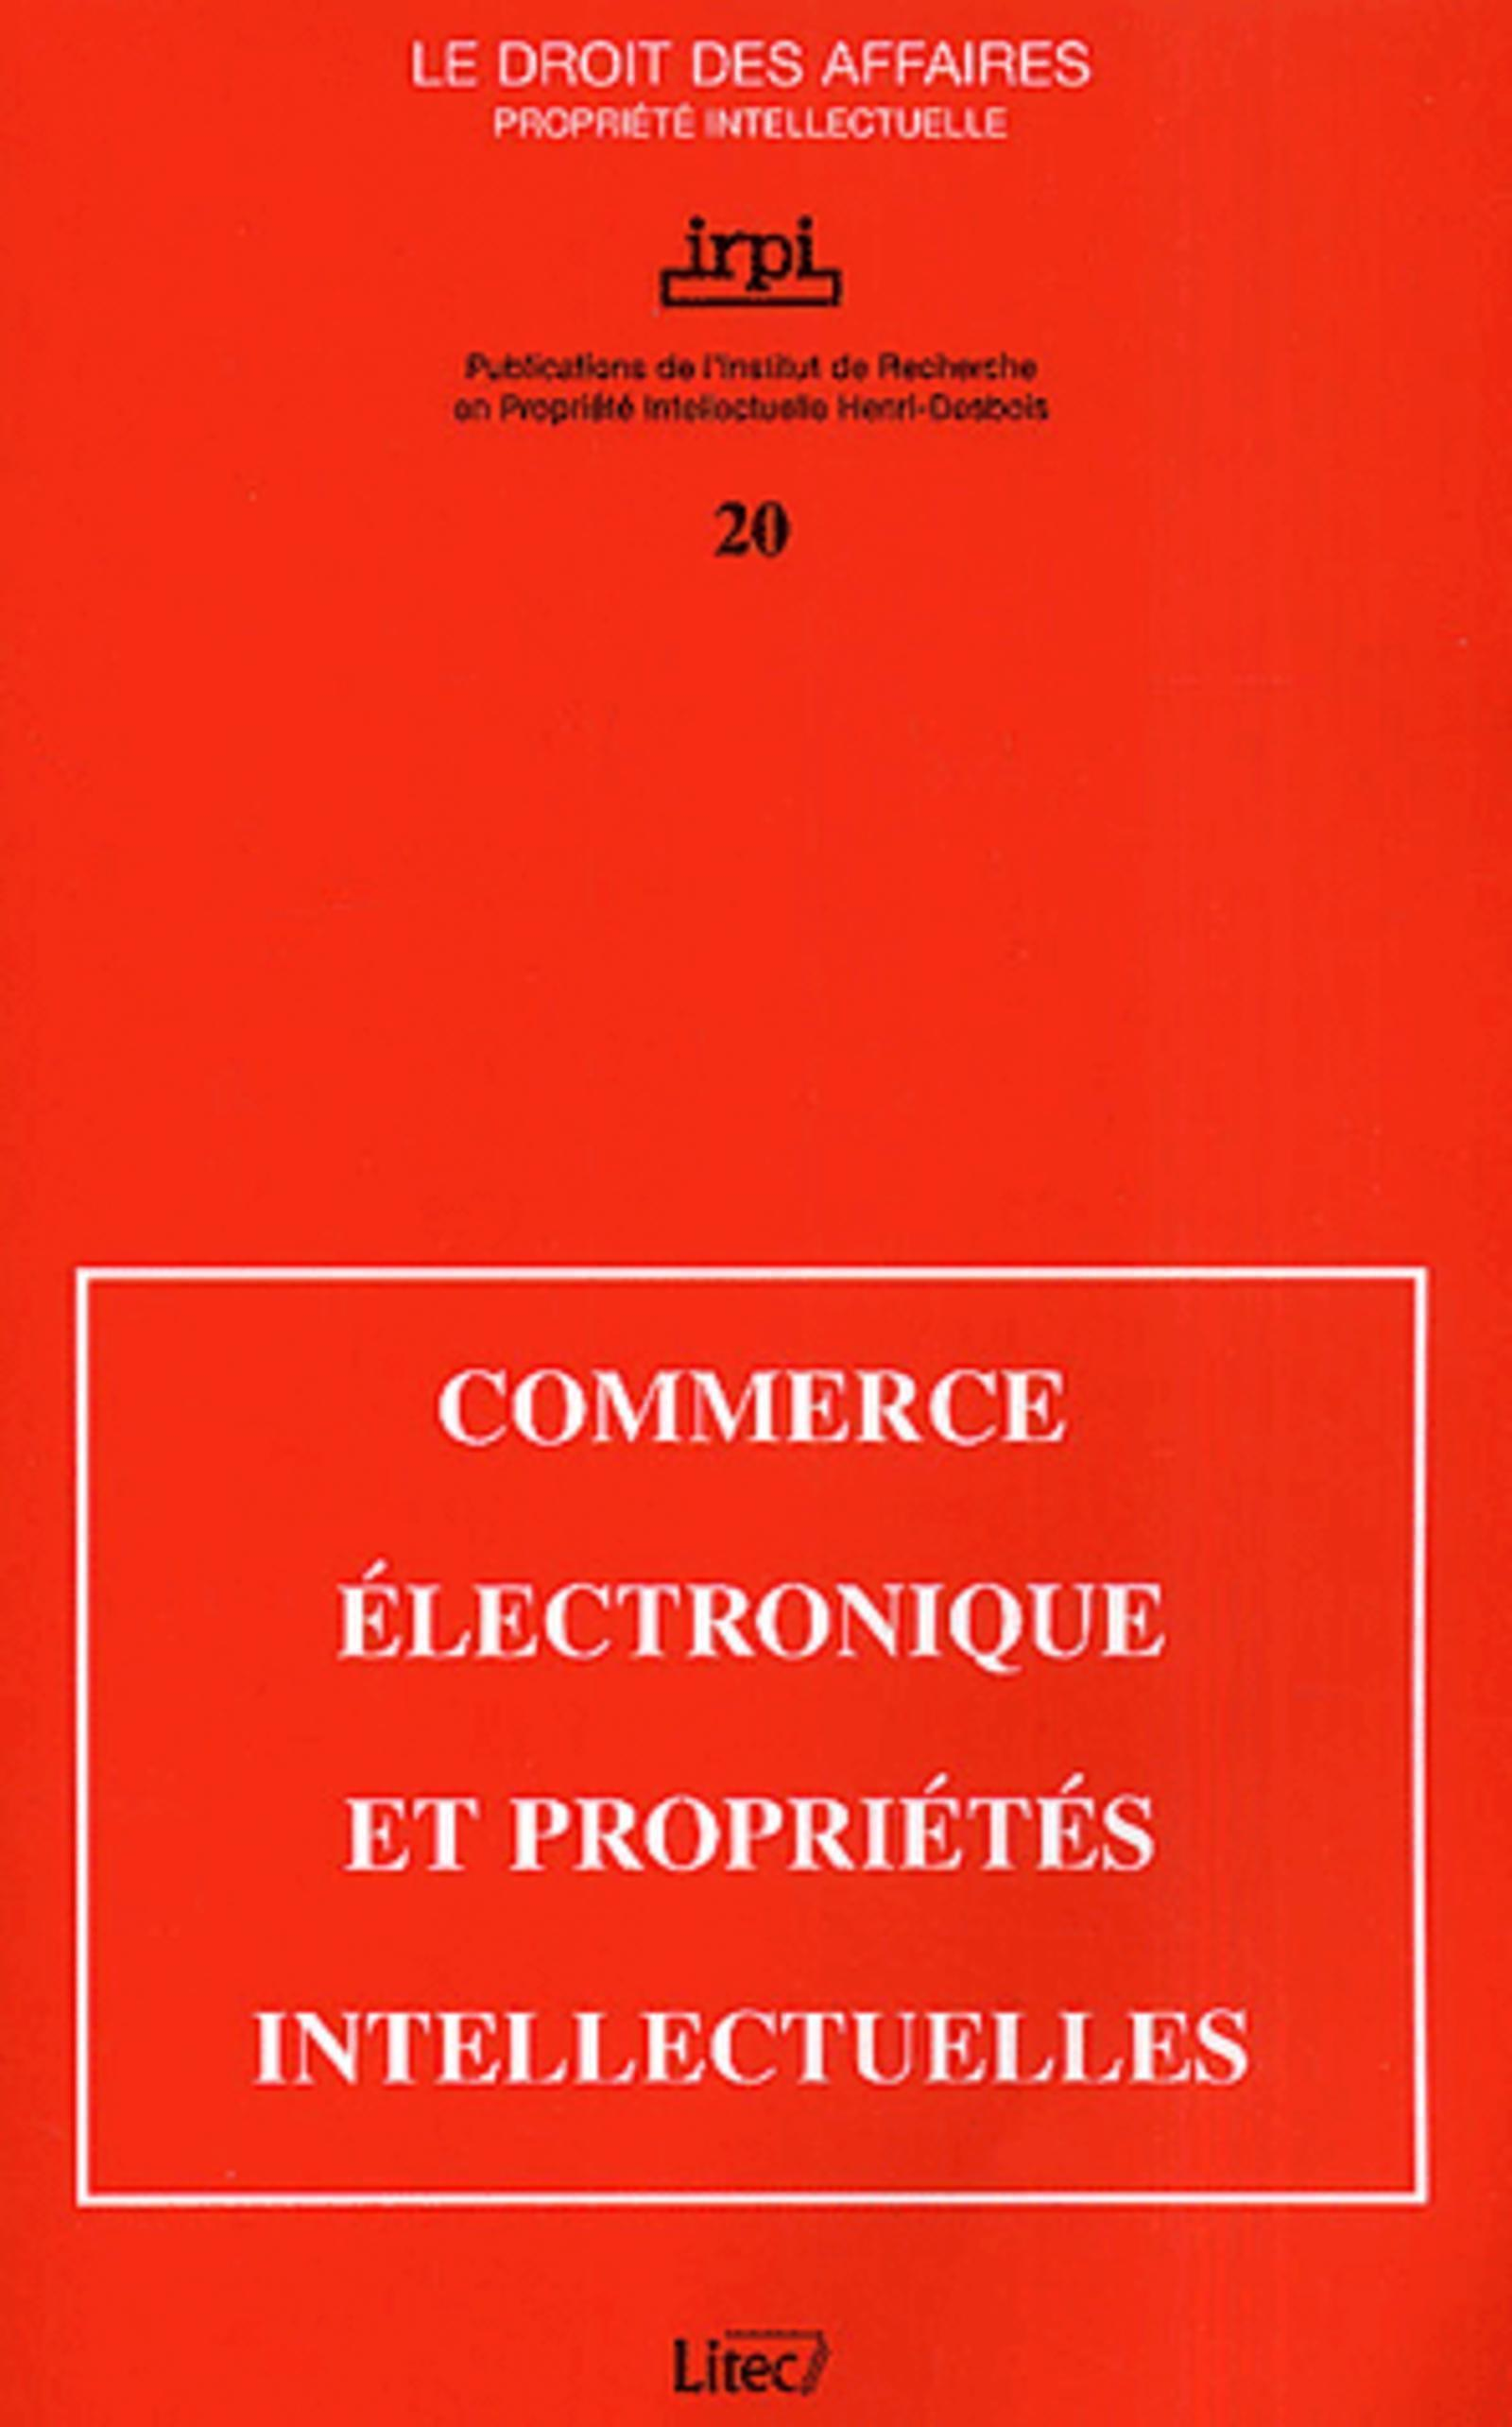 COMMERCE ELECTRONIQUE ET PROPRIETES INTELLECTUELLES